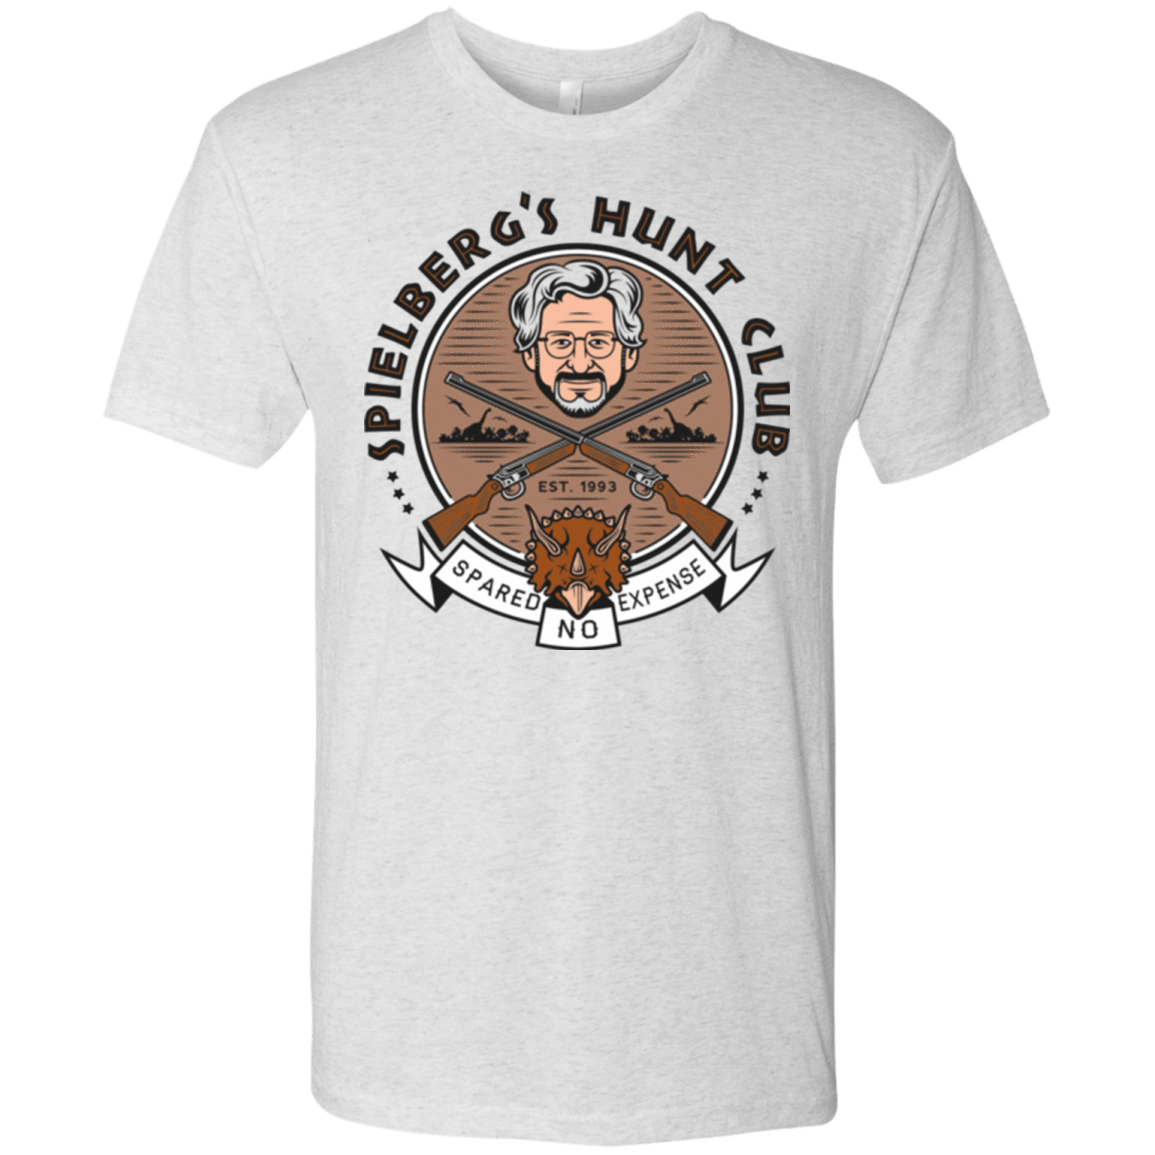 Triceratops Hunt Club Men's Triblend T-Shirt